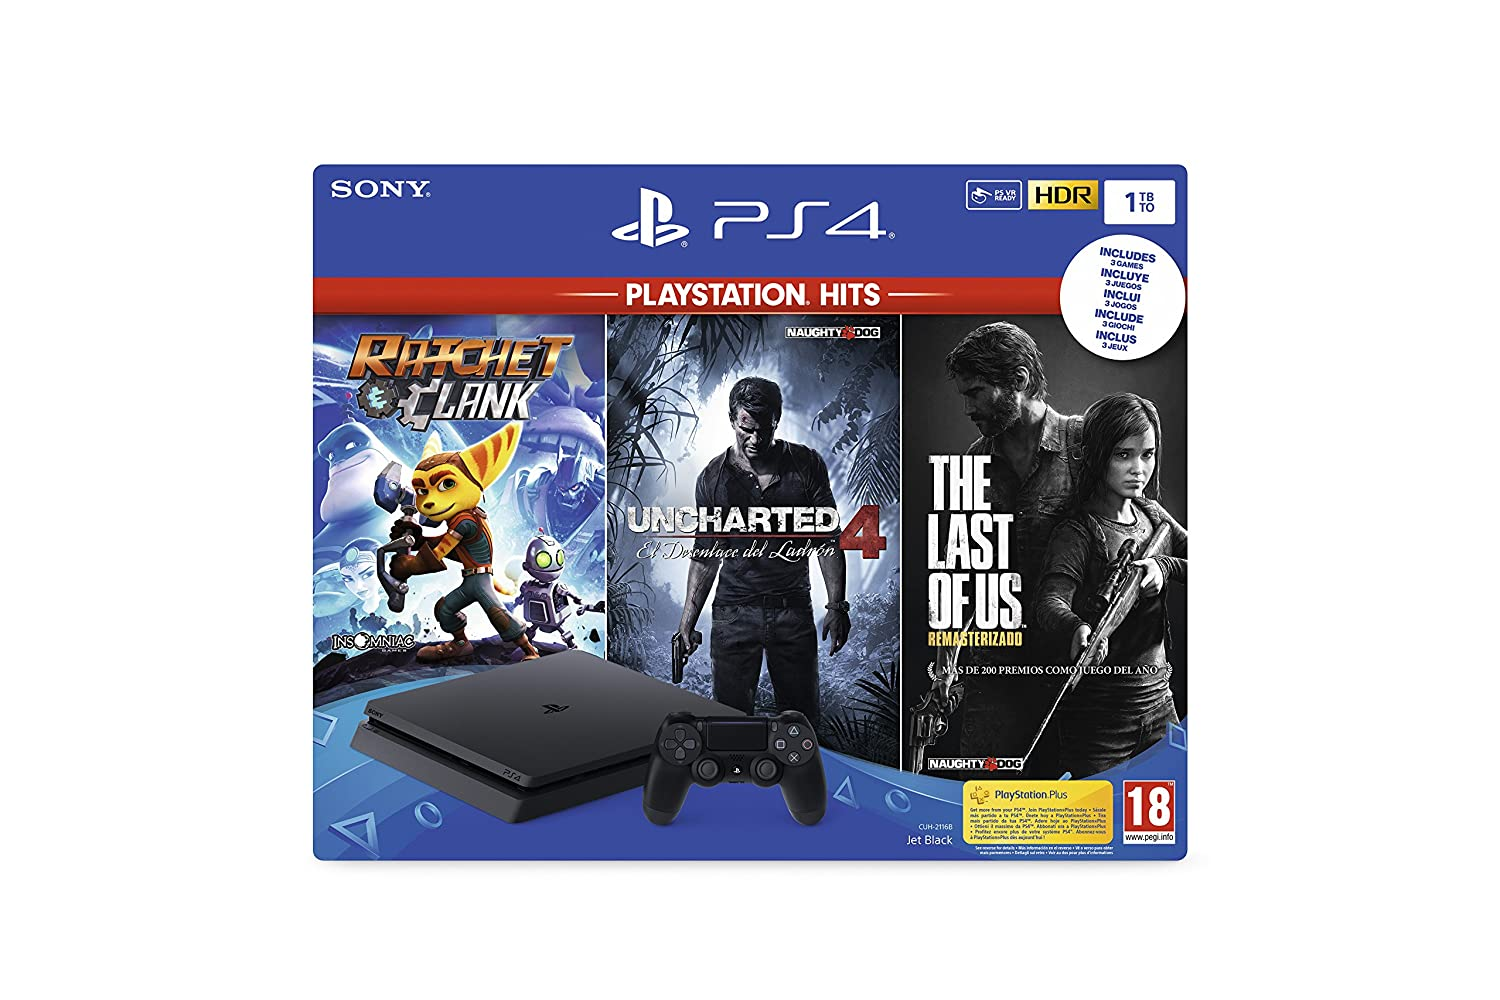 Playstation 4 (PS4) - Consola 1TB + Ratchet & Clank + The ...